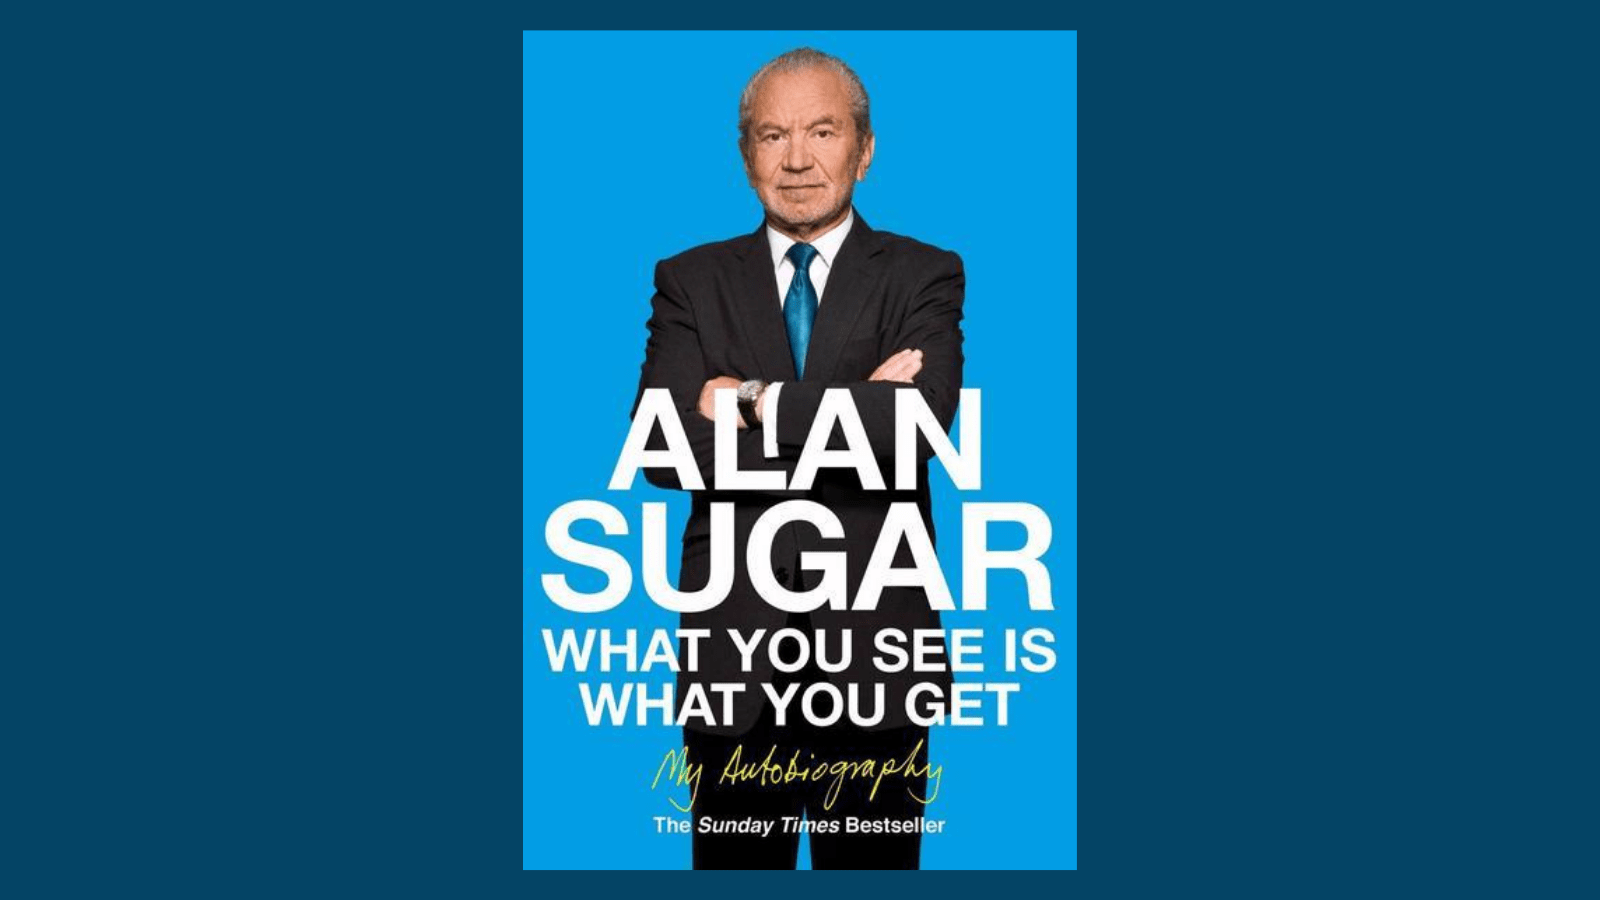 Alan Sugar - What You See is What You Get